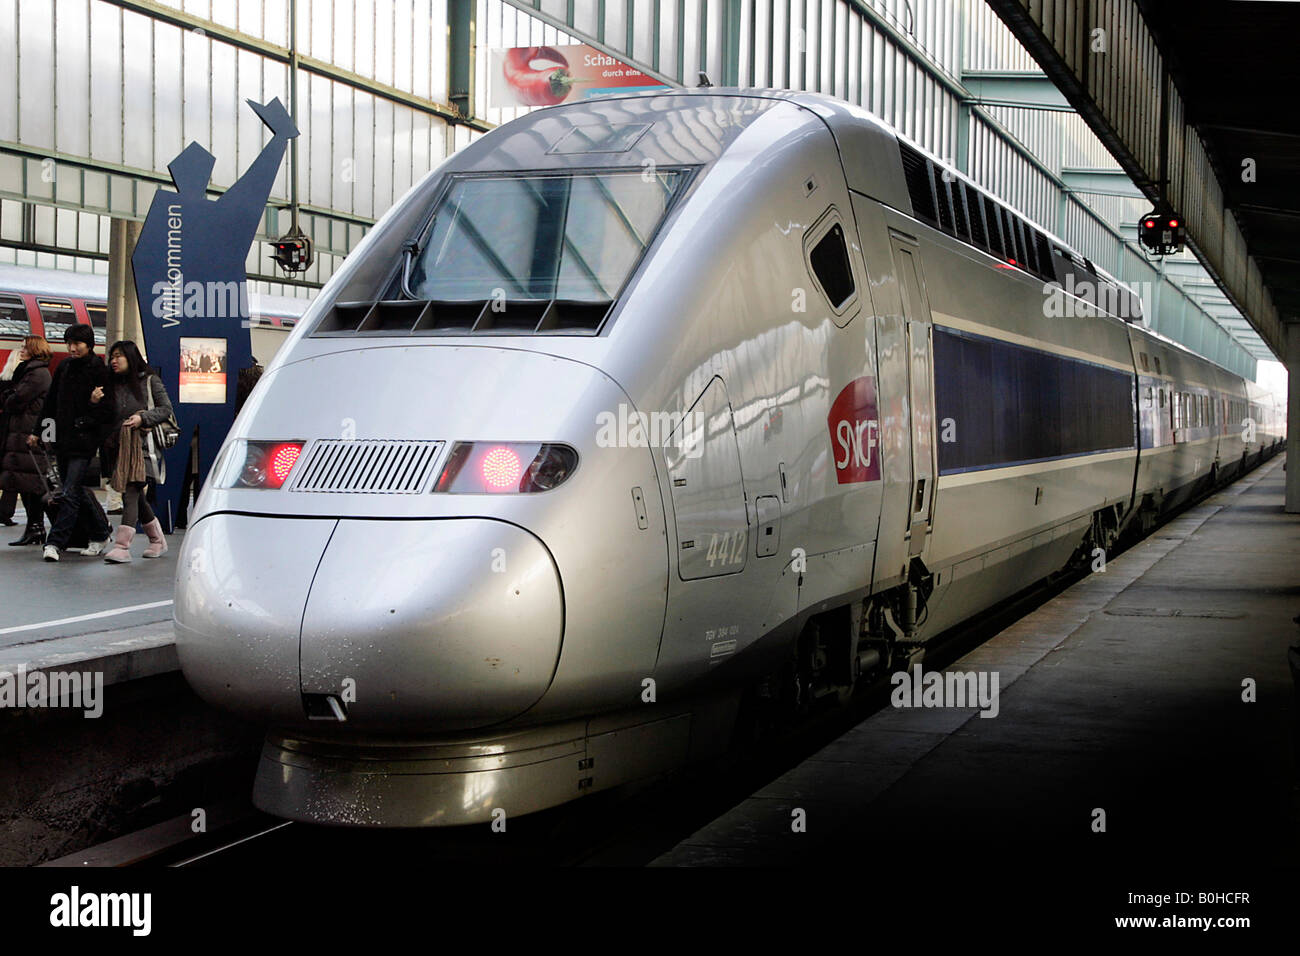 tgv high speed train on the stuttgart paris line stuttgart central stock photo royalty free. Black Bedroom Furniture Sets. Home Design Ideas